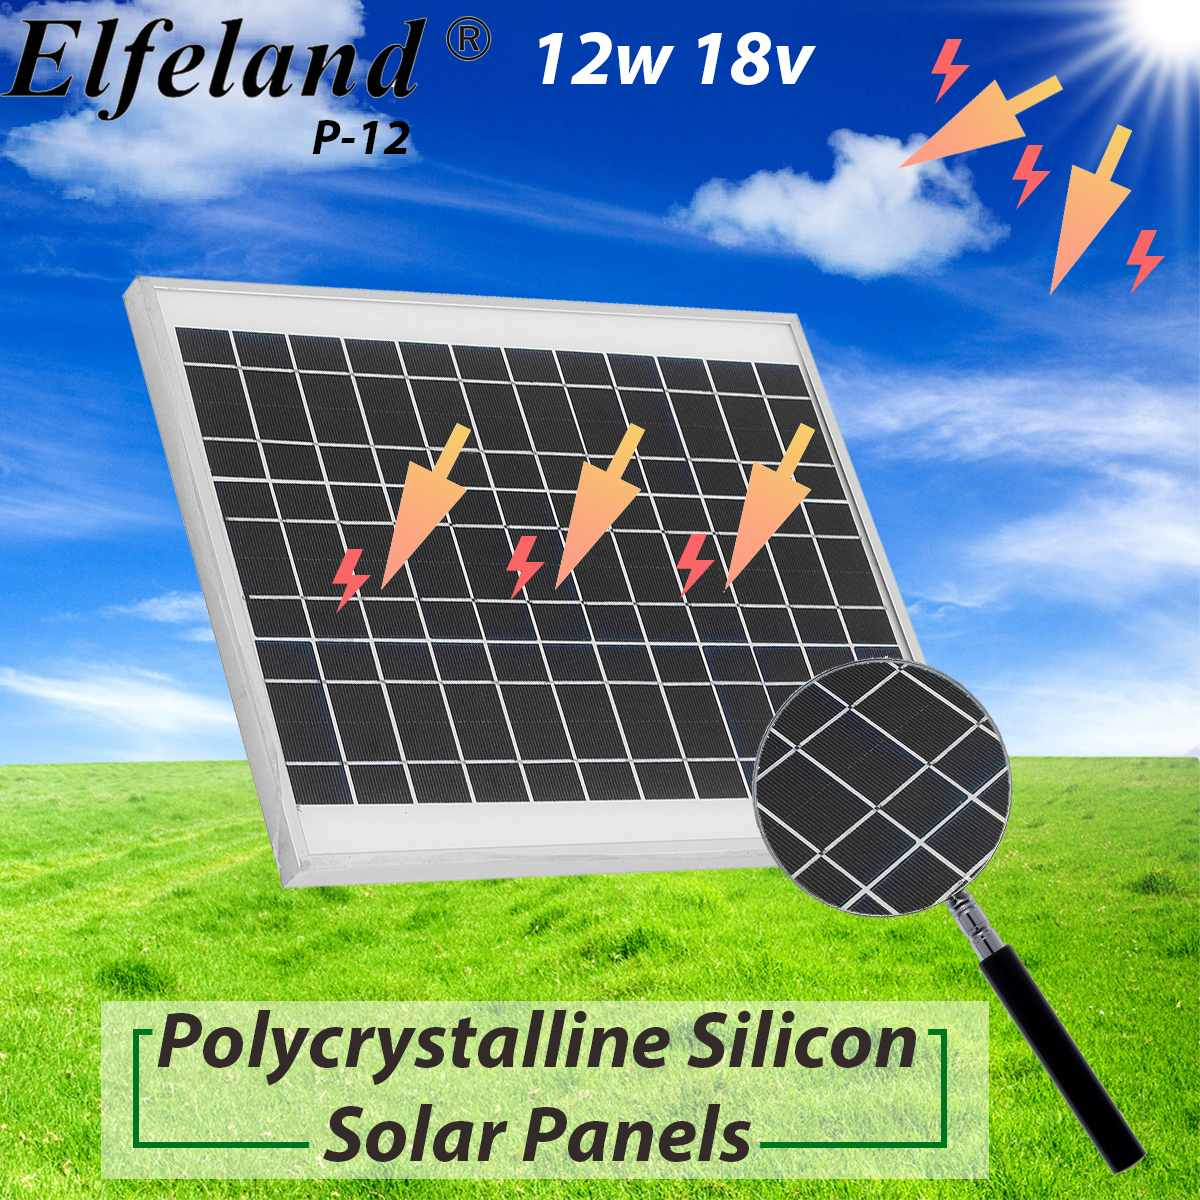 KINCO 12W 18V Polycrystalline Silicon Solar Panels High Conversion Rate And Output DIY Solar System For Car Battery RT Boat